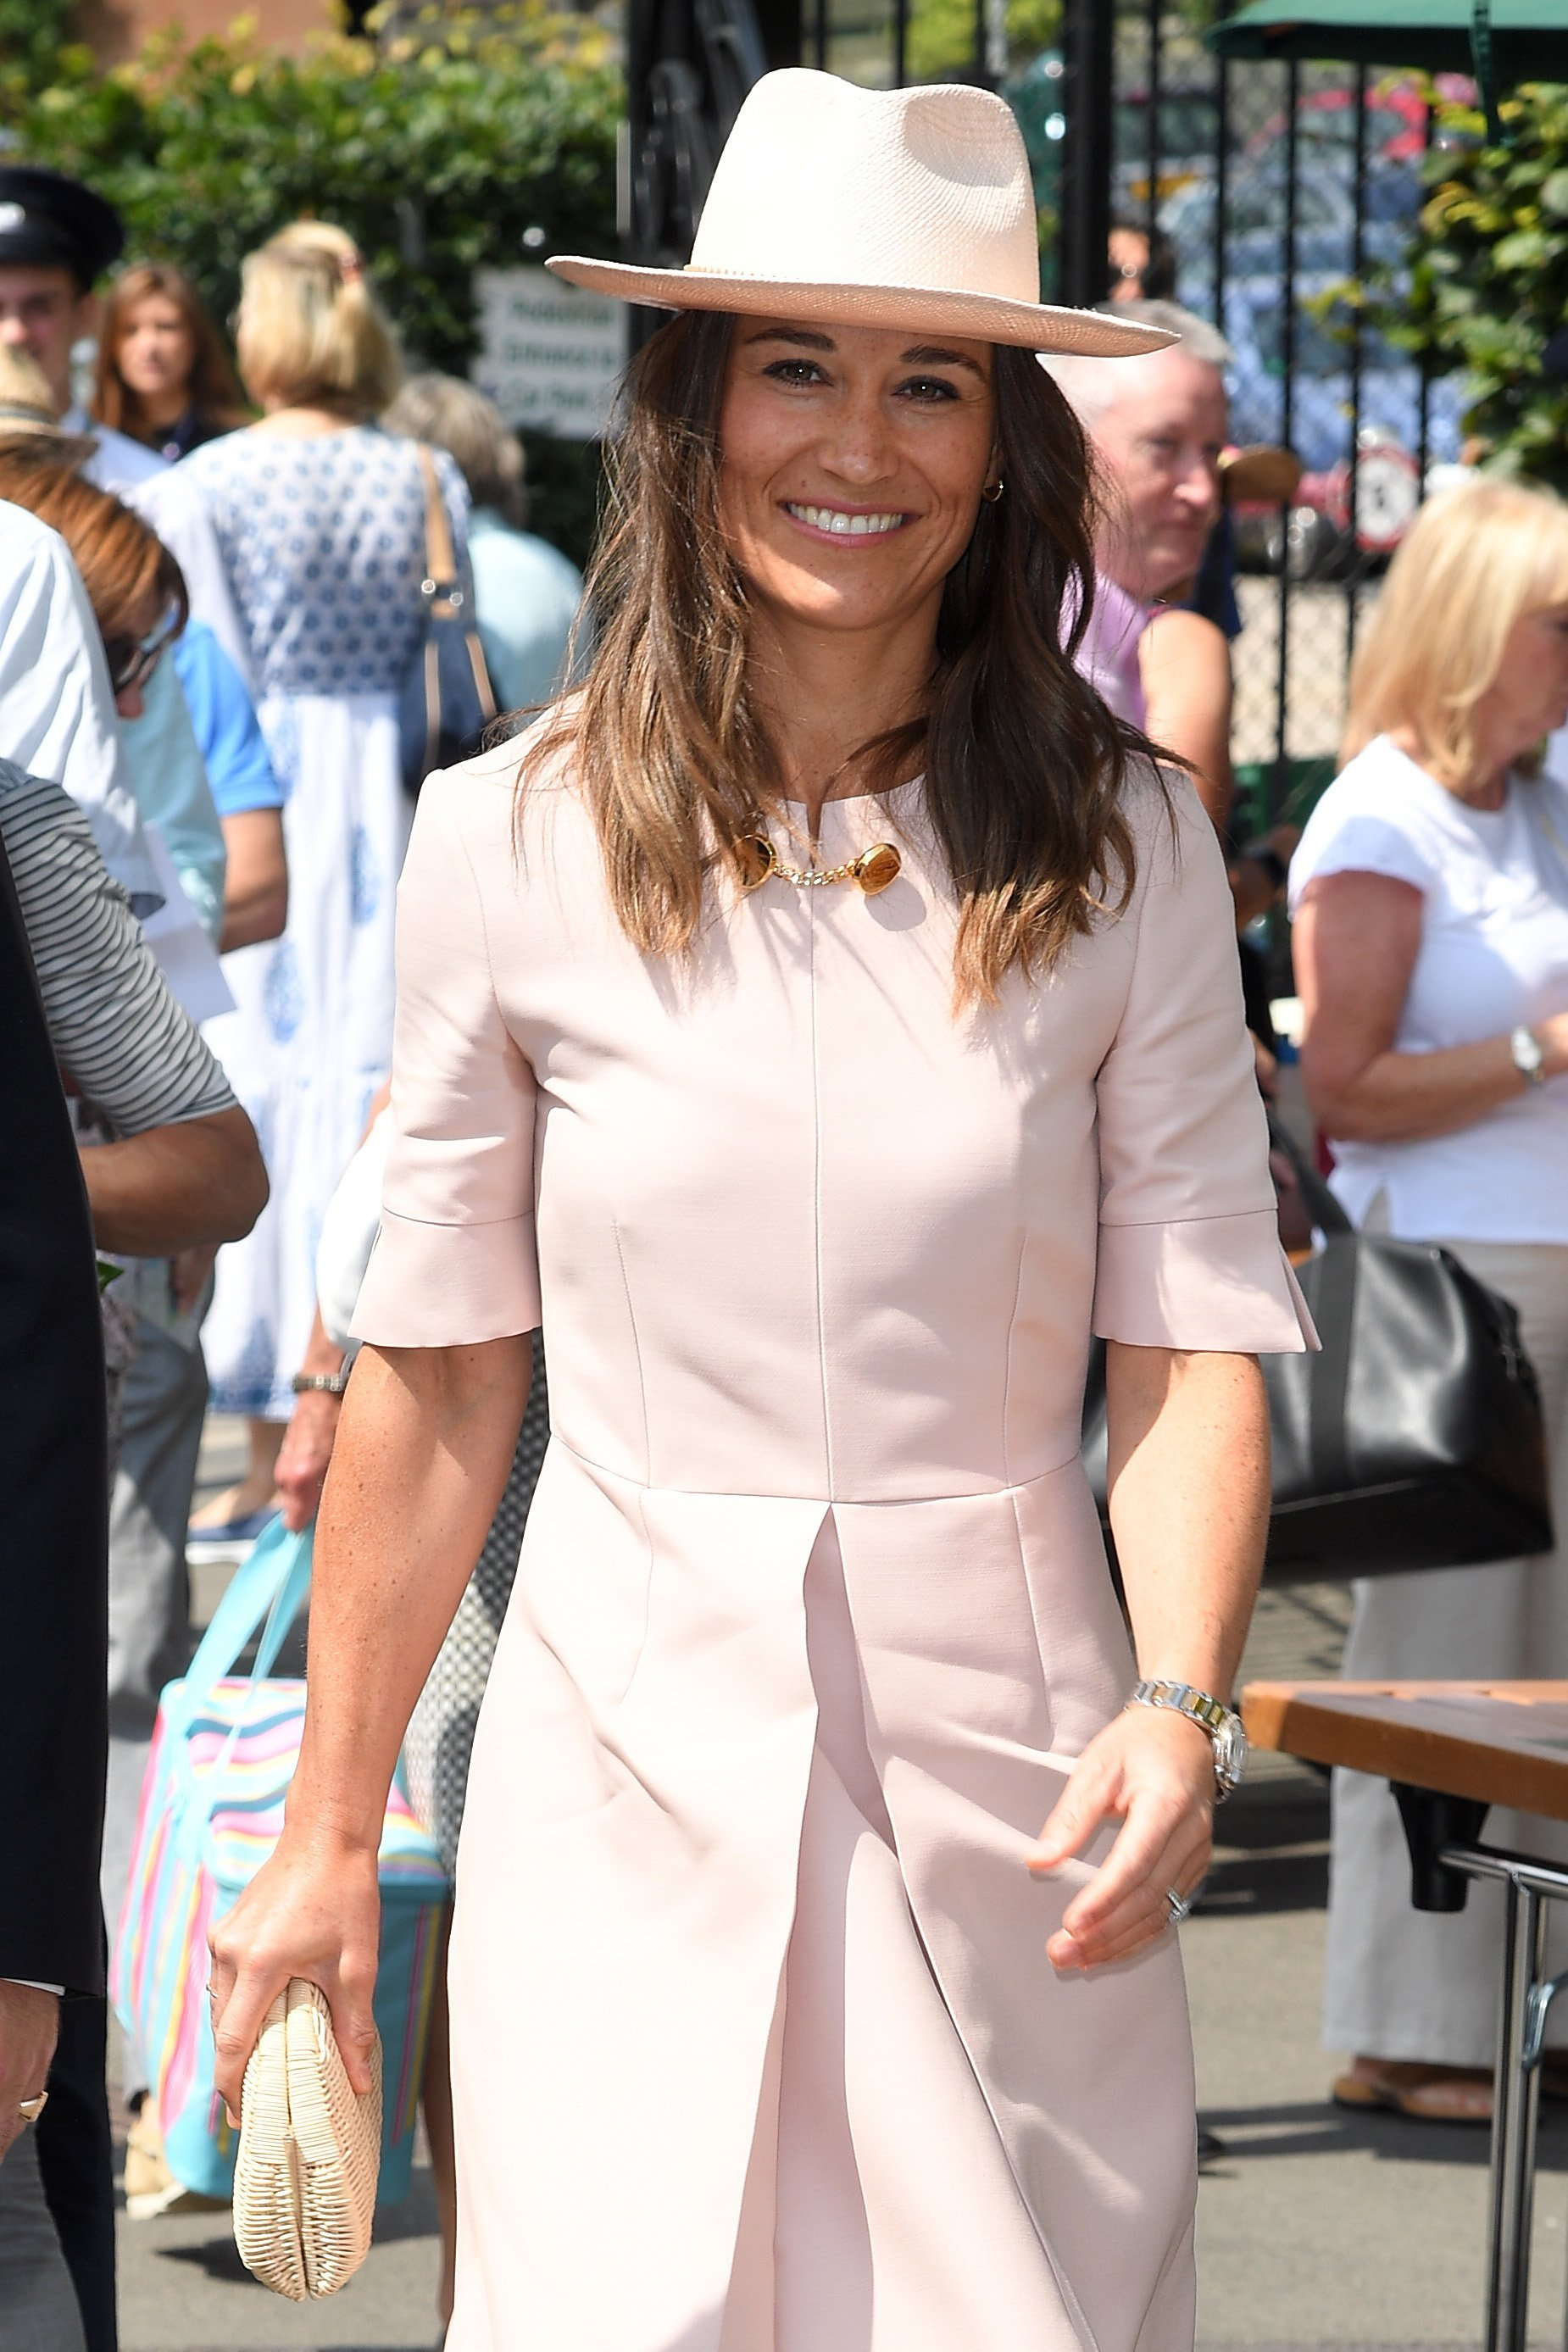 Pippa Middleton attends Wimbledon 2019 during Week 1 | Photo: Getty Images